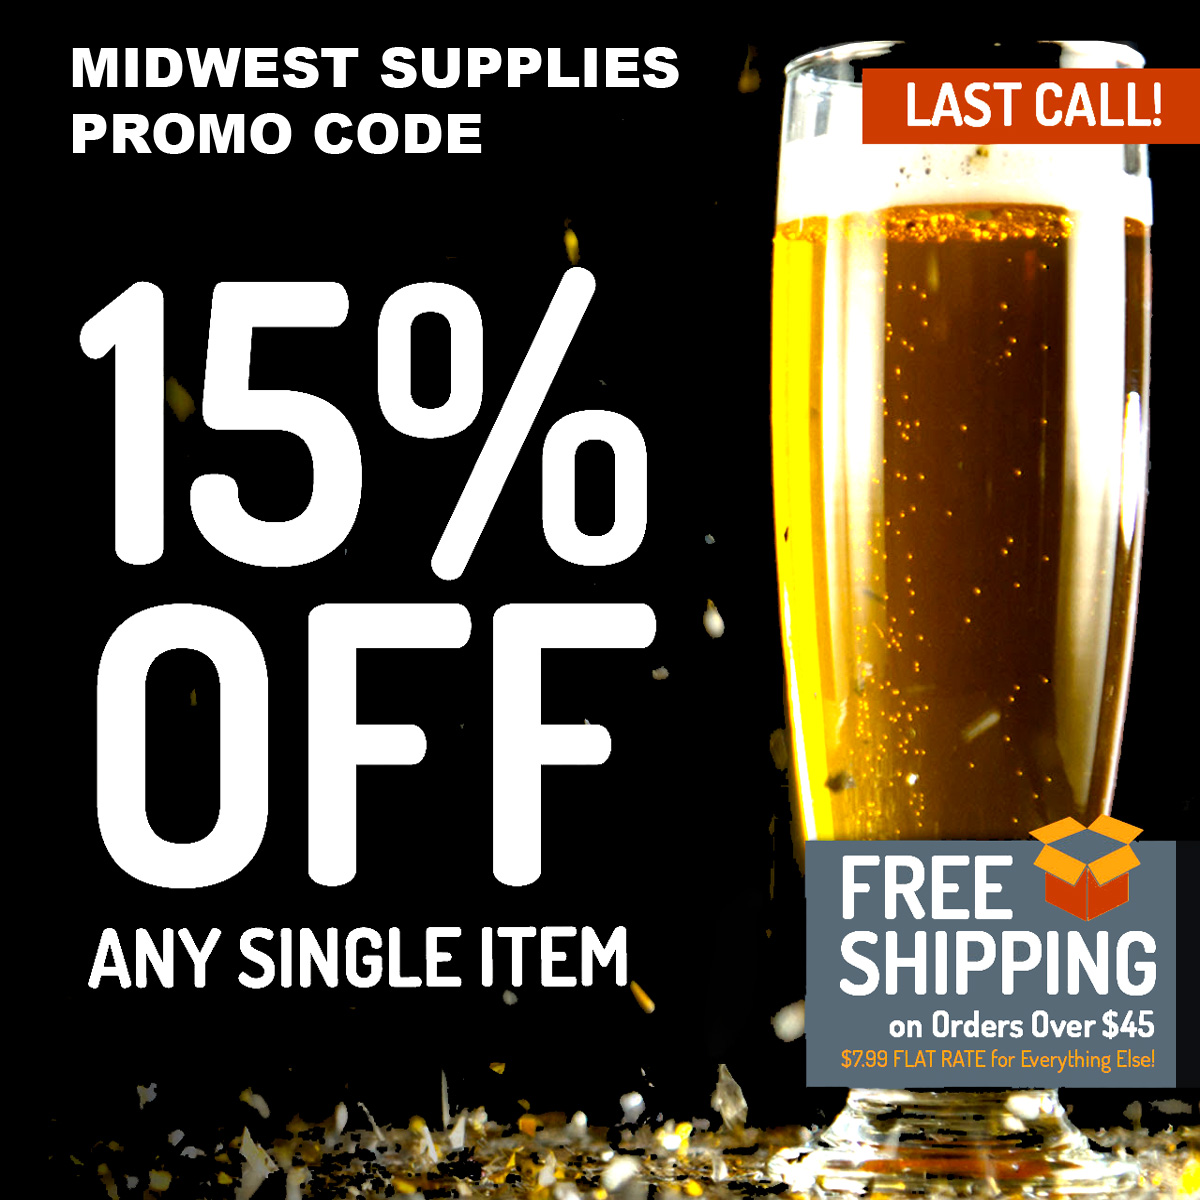 Midwest Supplies Save 15% On A Single Item with this MidwestSupplies.com Promo Code Coupon Code